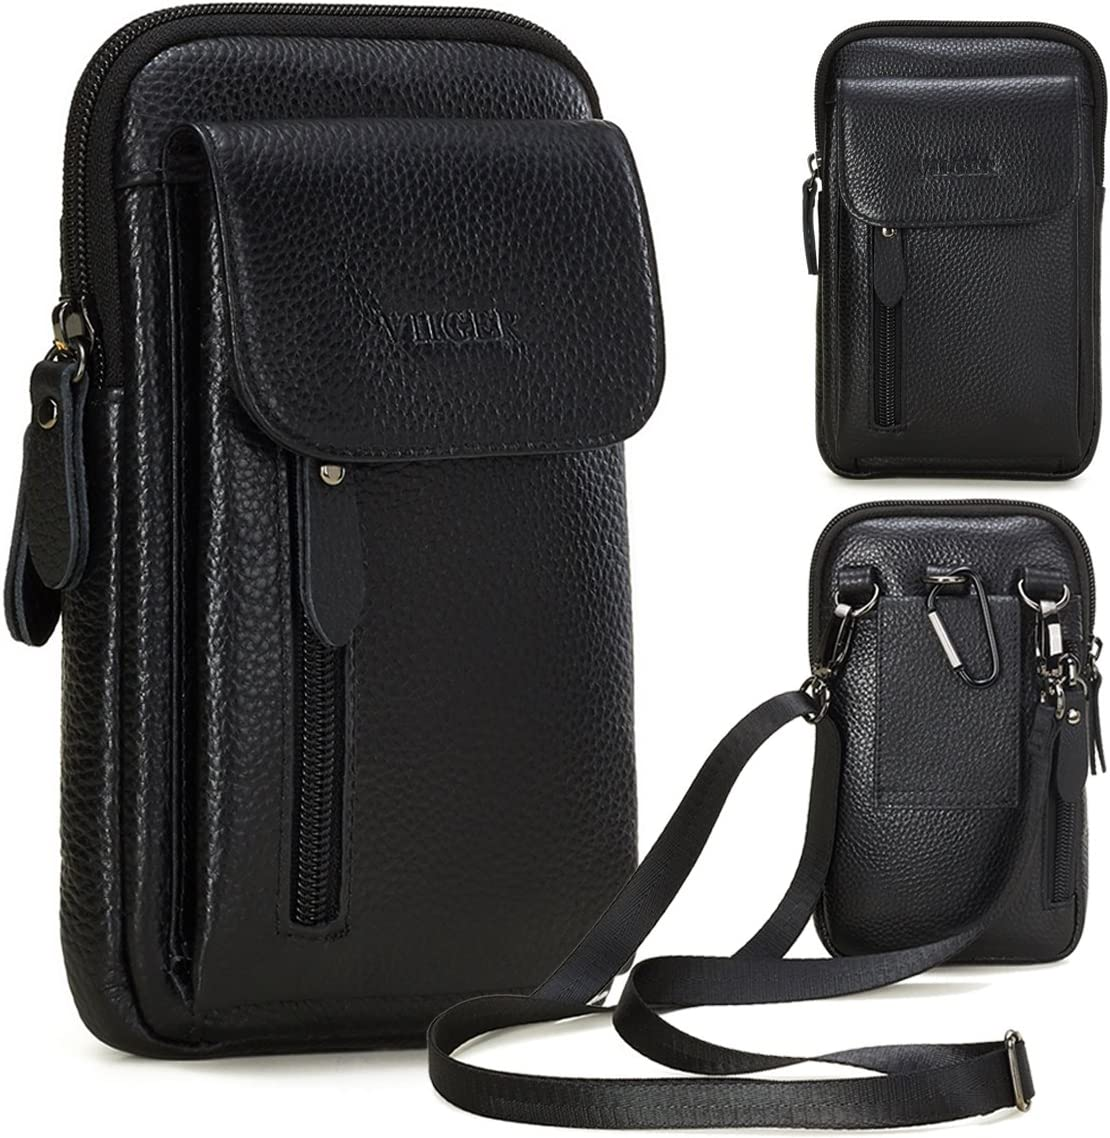 Genuine Leather Cell Phone Holster trust w P Belt Magnetic Clip Cover Lowest price challenge